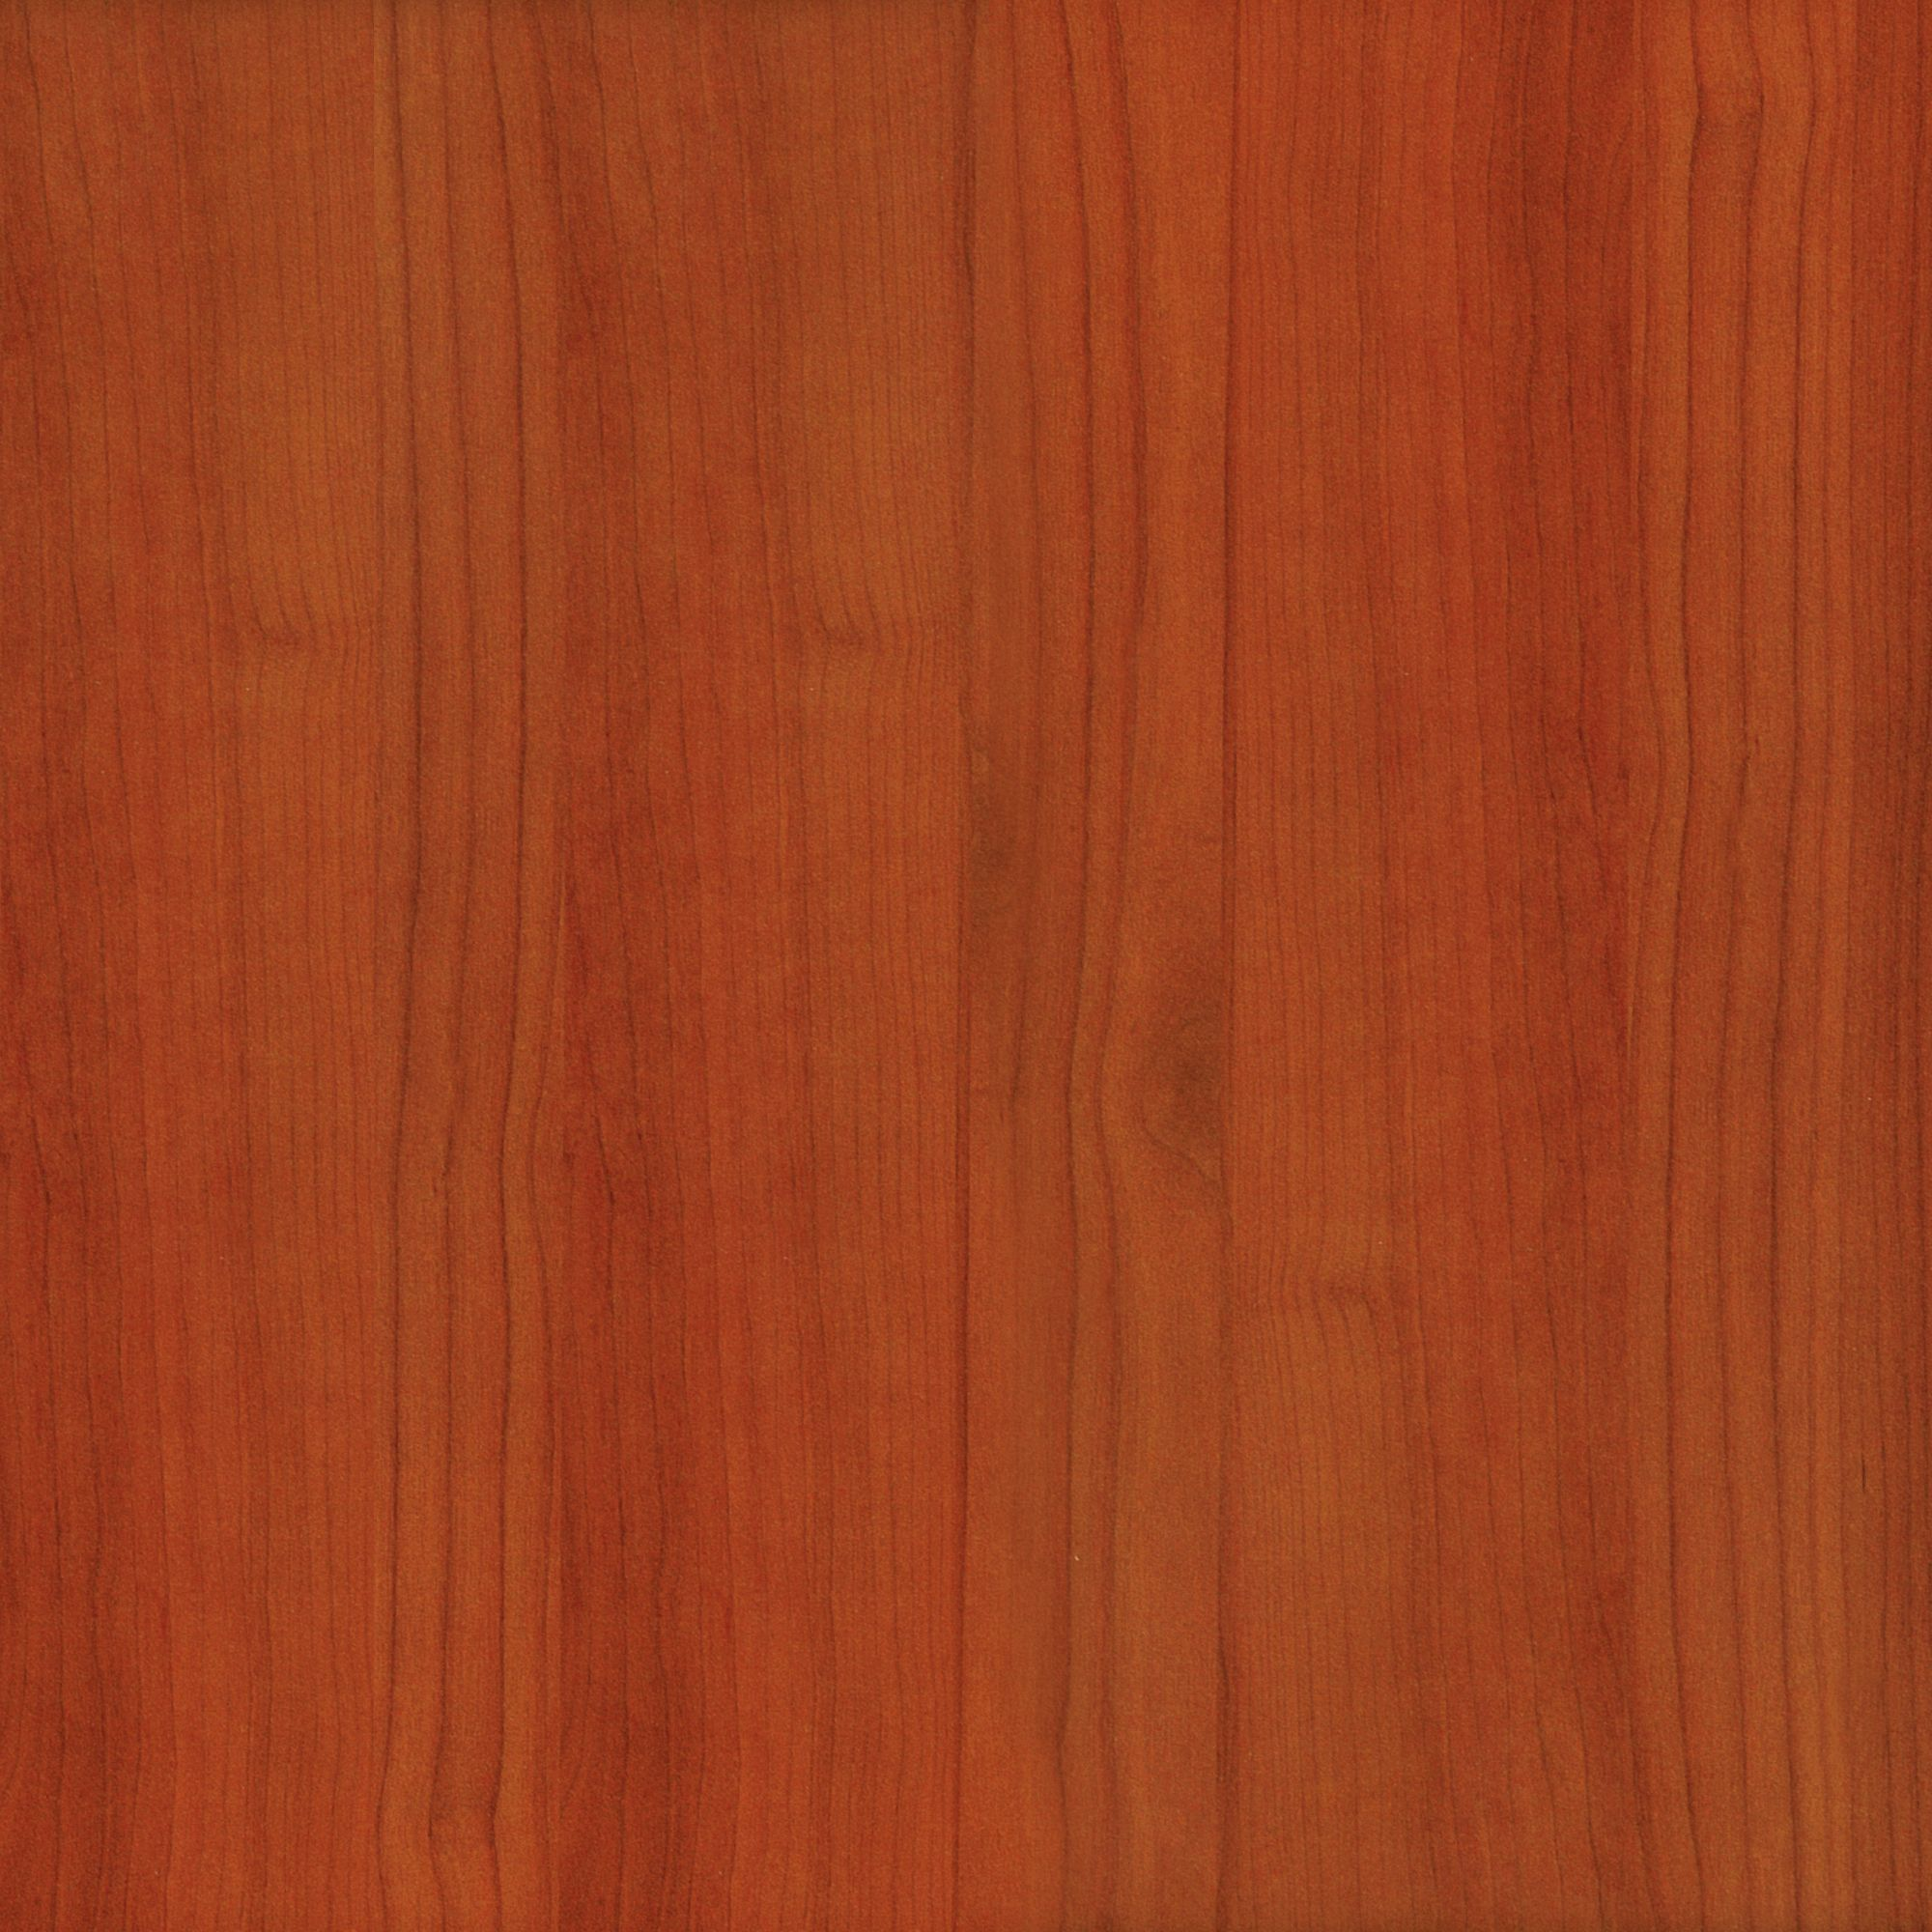 Texture, Wood, Woodwind Instrument, Surface Finish, Wood Planks, Trees, Pattern,